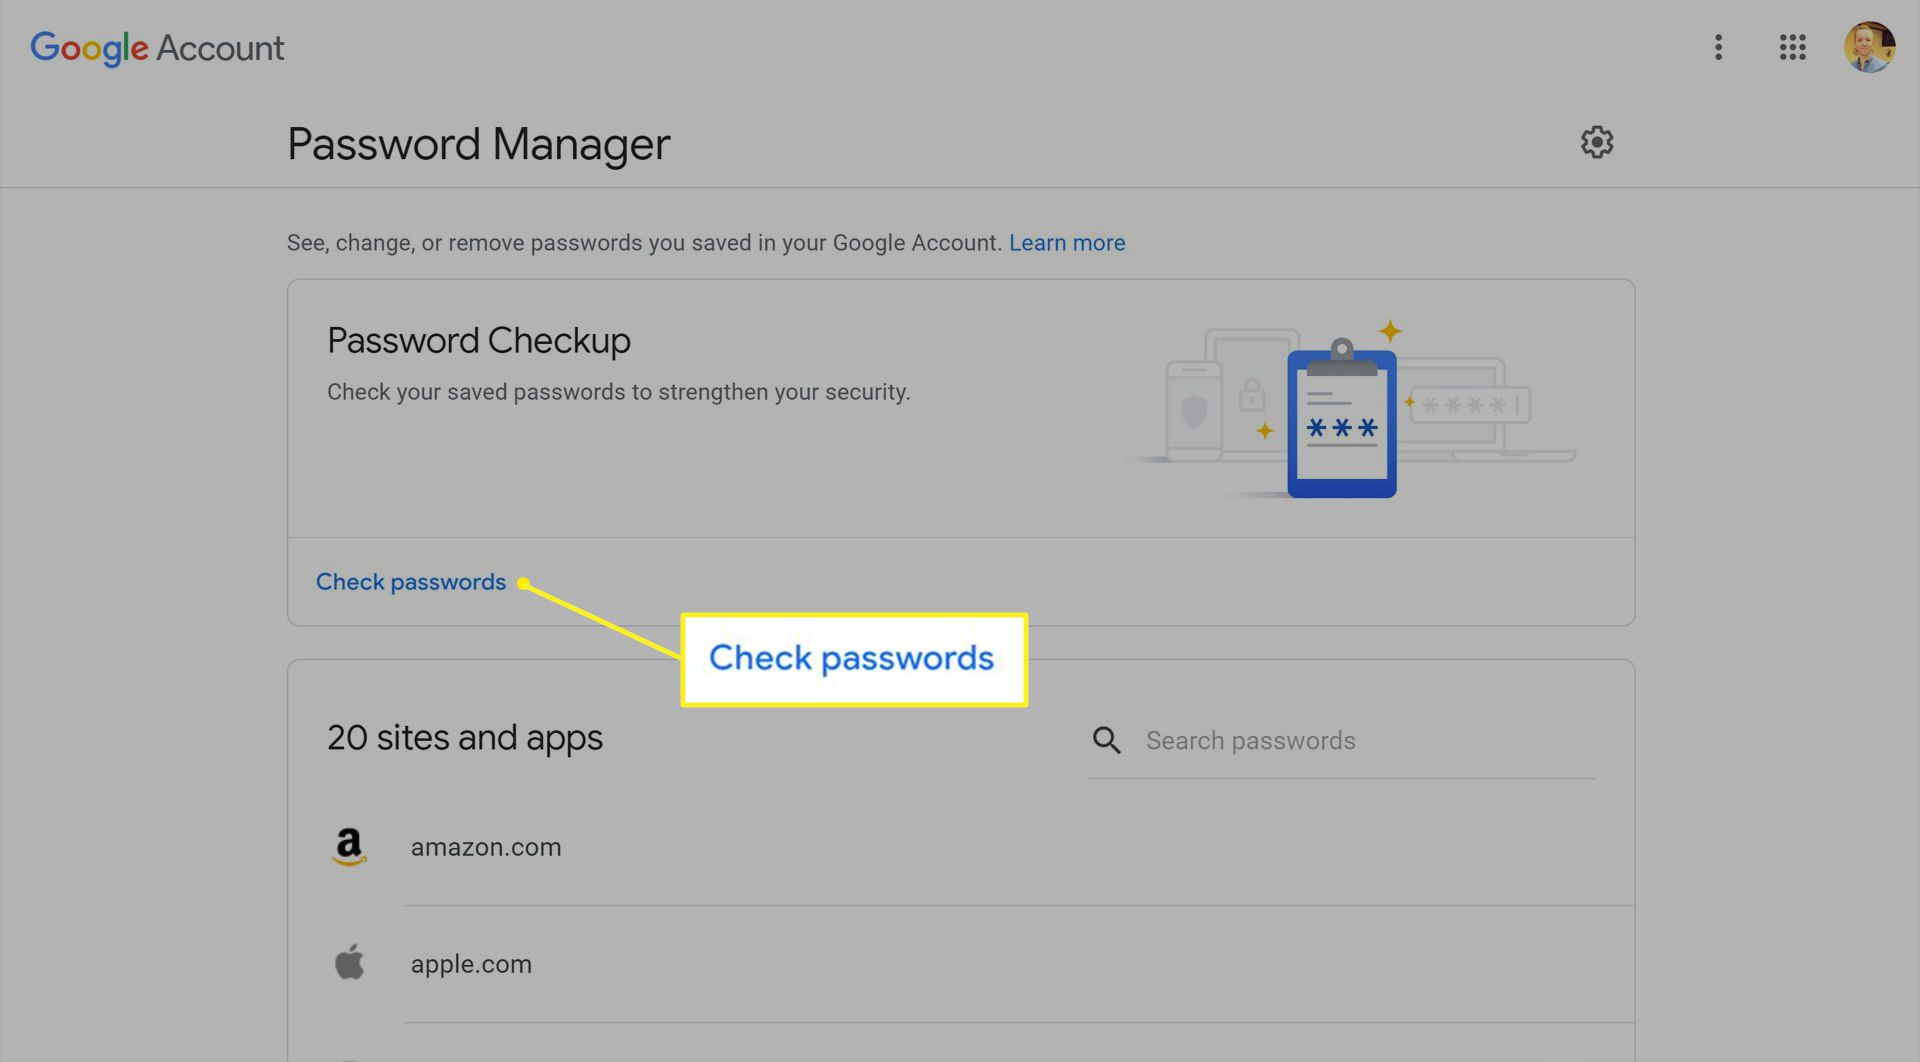 Google password manager with Check passwords highlighted